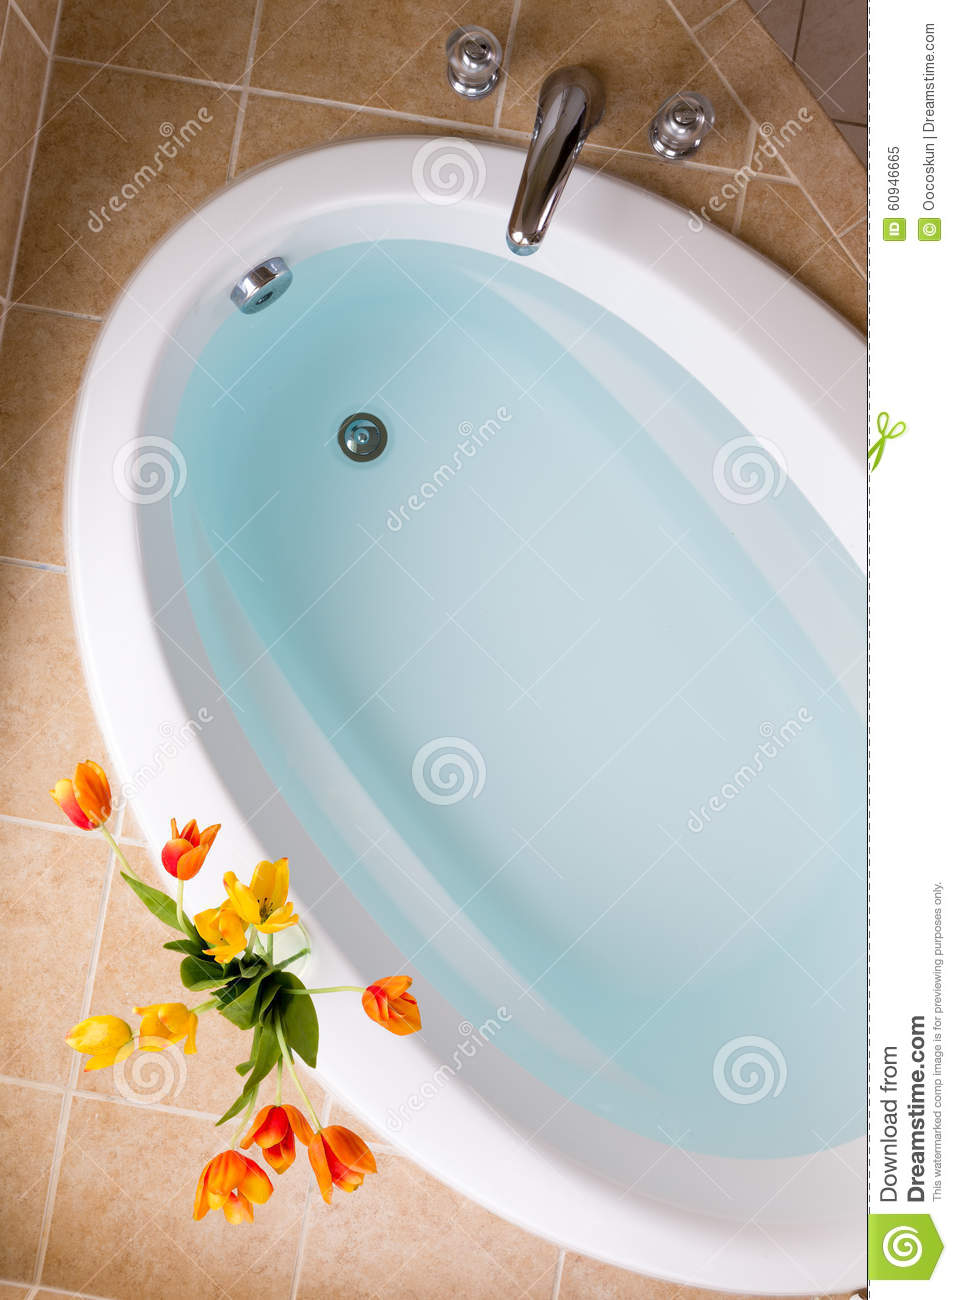 Oval Bathtub Filled With Clean Water Stock Image - Image of decor ...